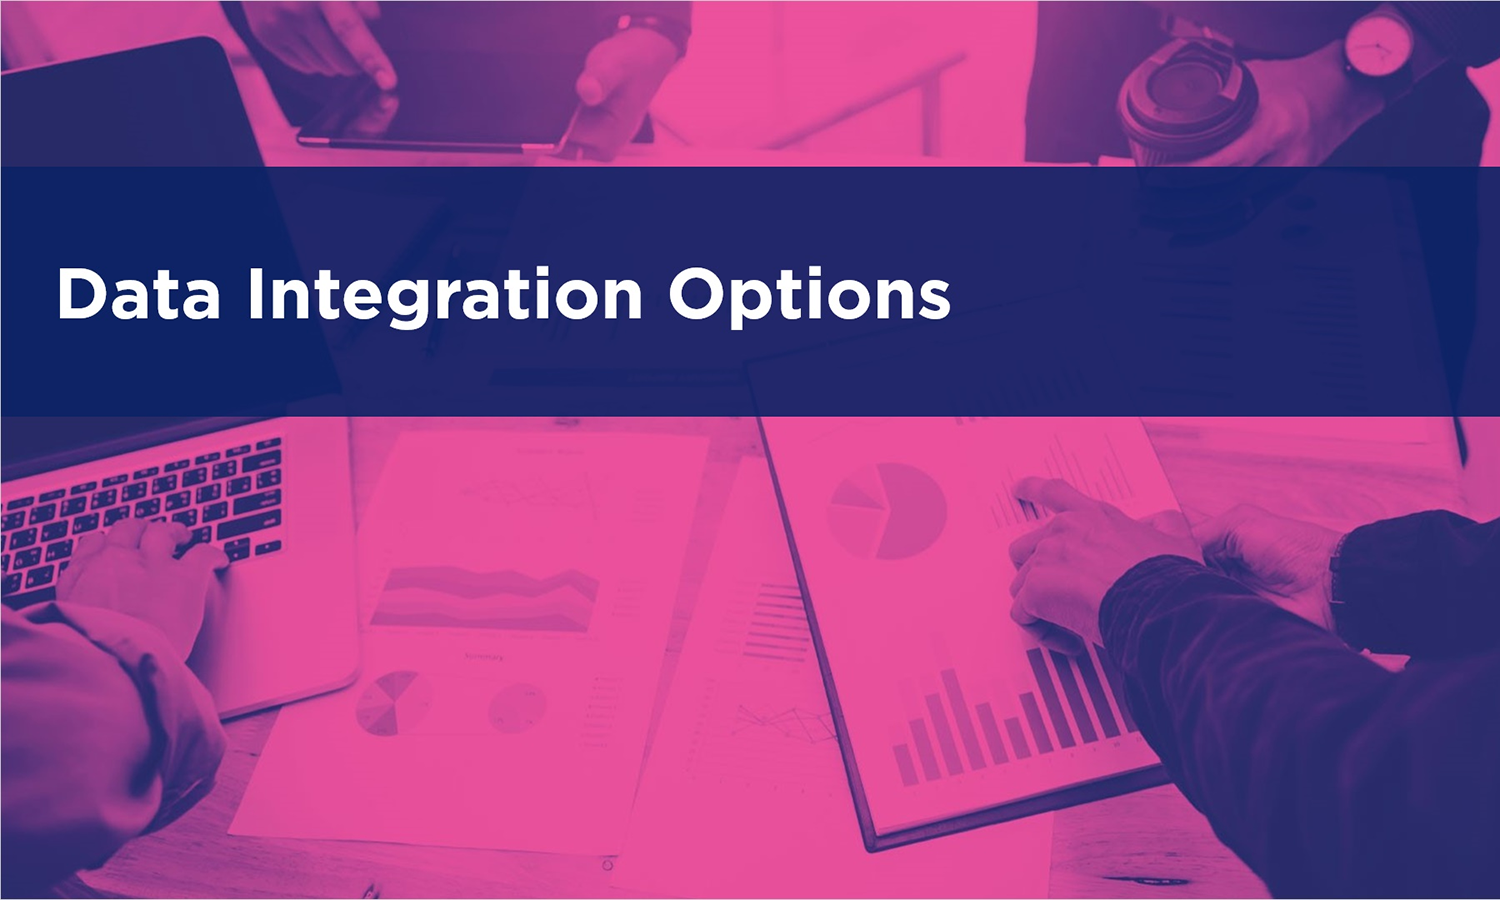 Data Integration Options